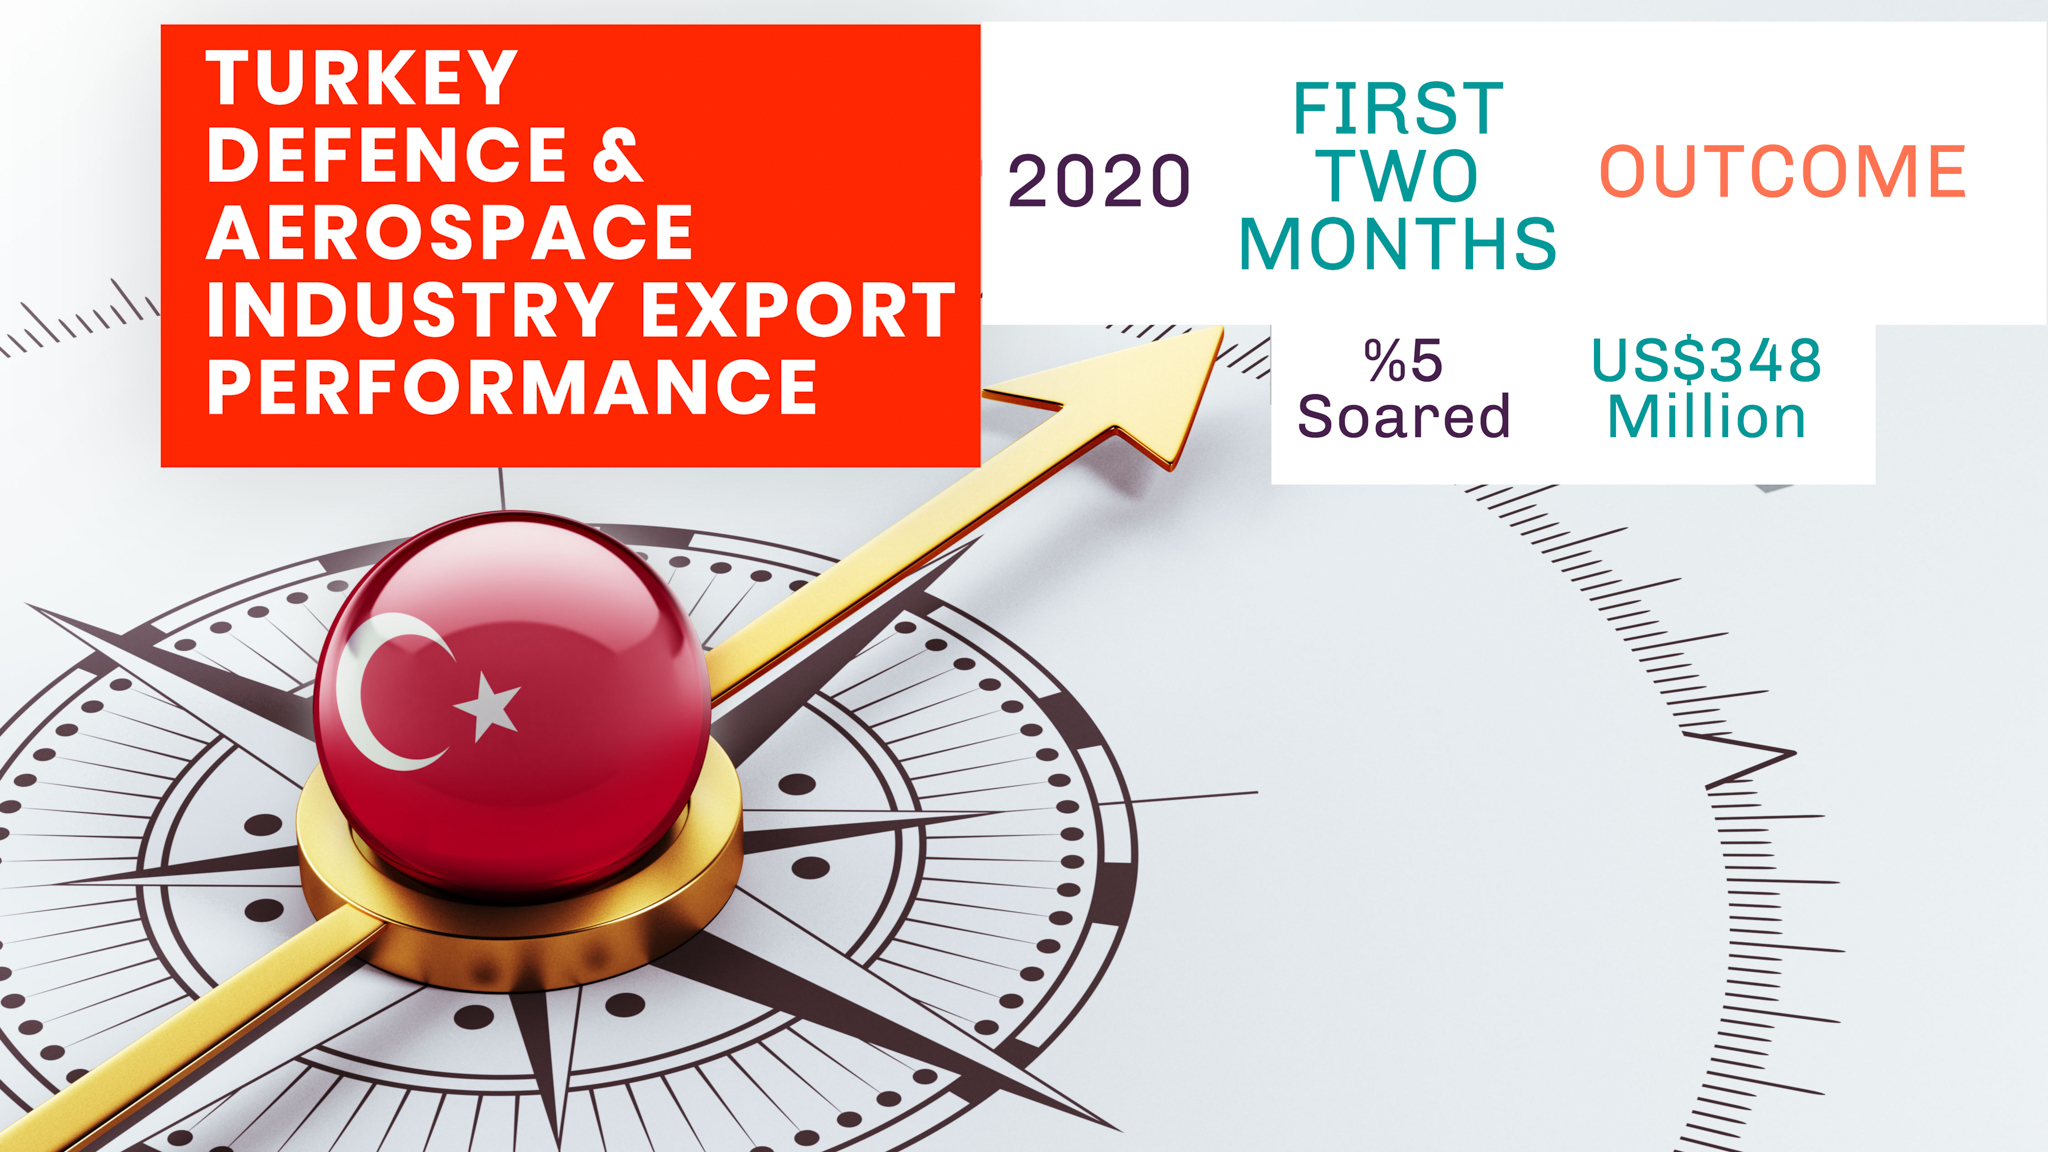 Turkish Defense & Aerospace Industry 2020 First Two Months Performance